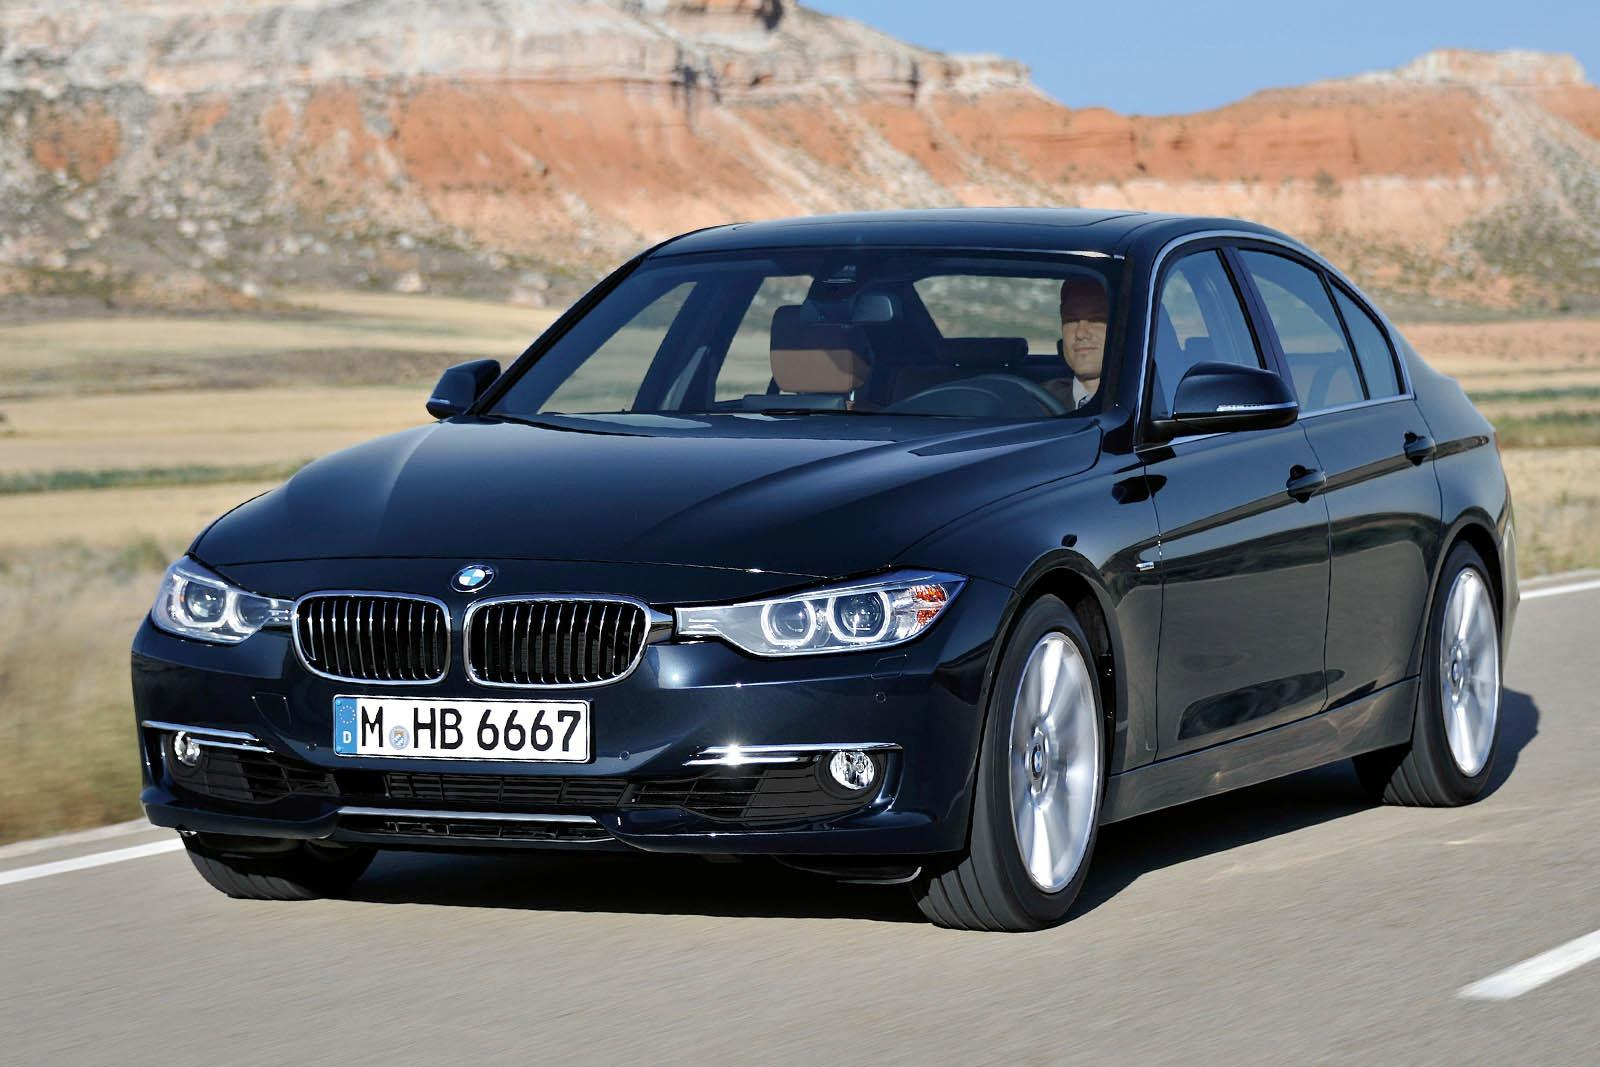 2012 bmw 3 series information and photos zombiedrive. Black Bedroom Furniture Sets. Home Design Ideas